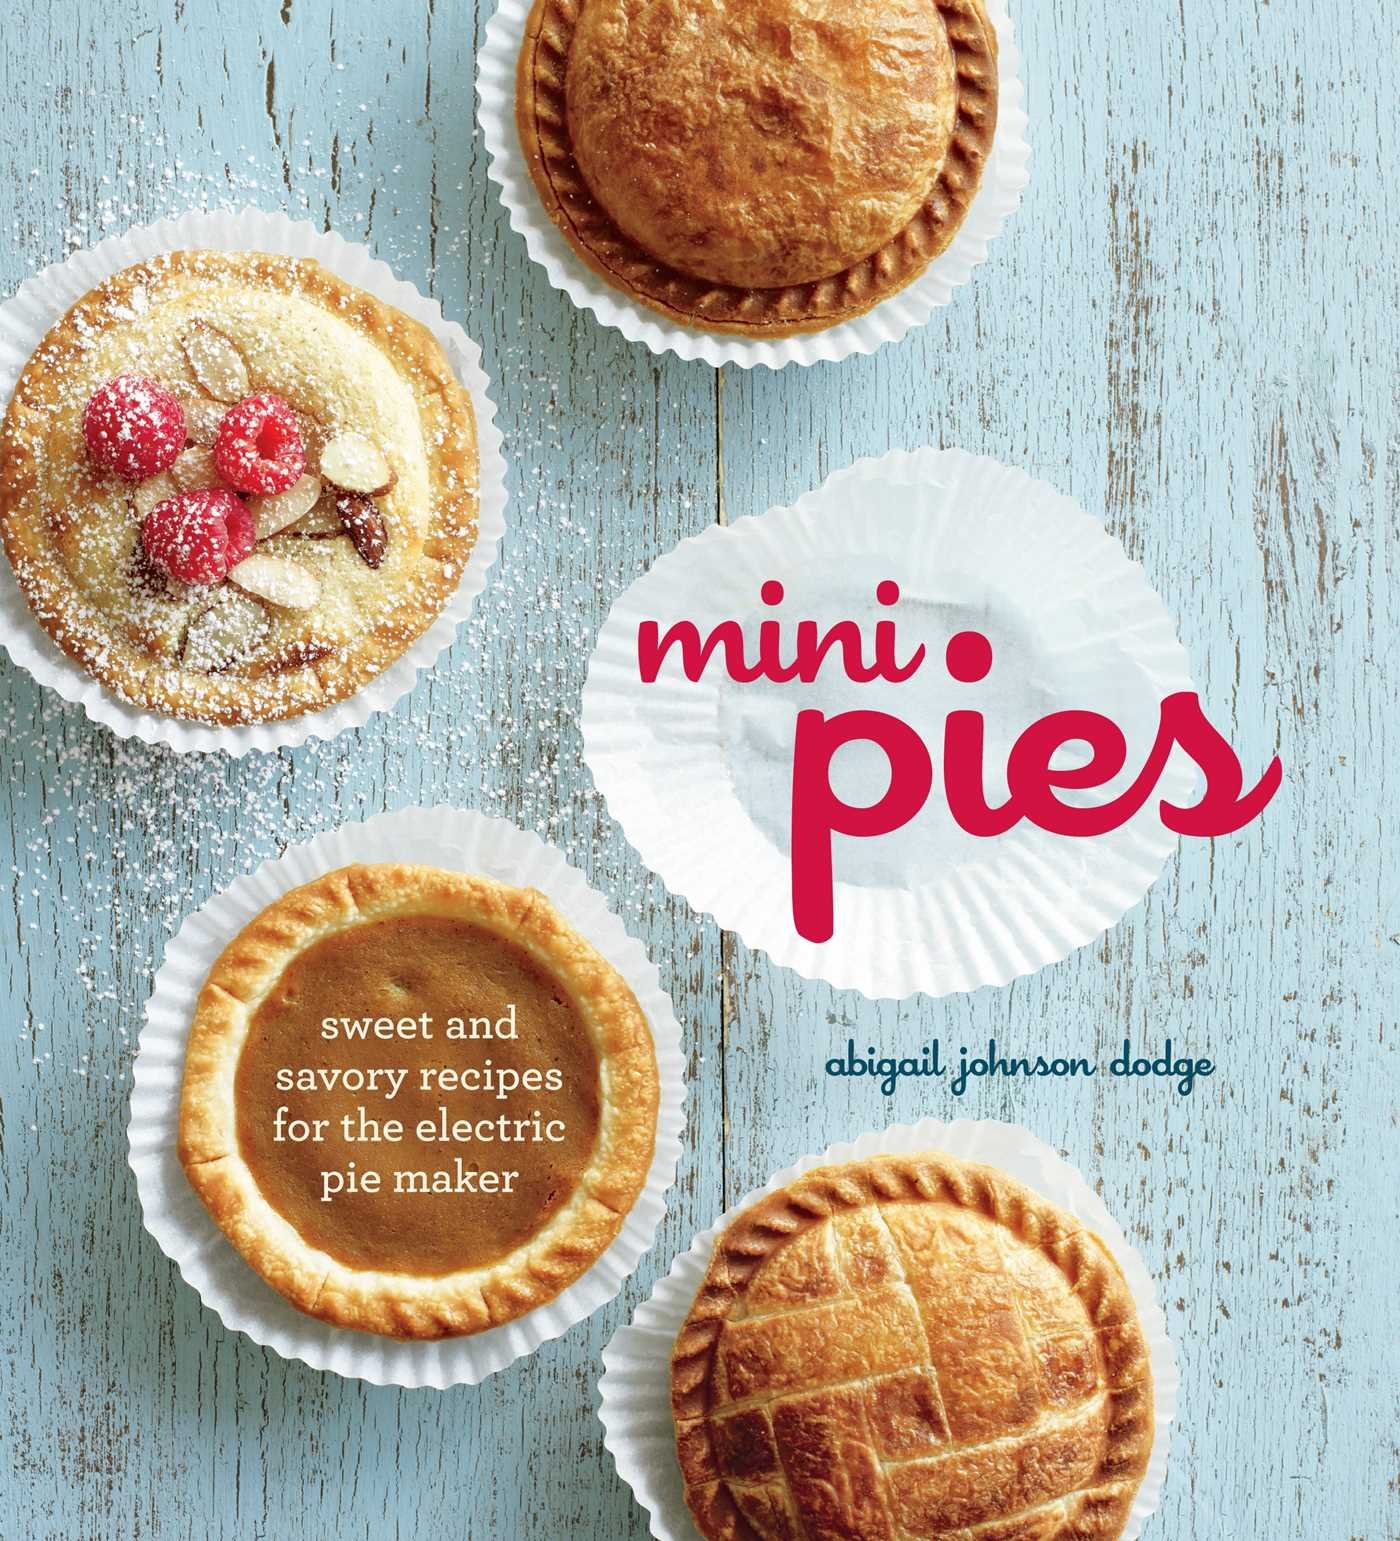 Mini Pies Savory Recipes Electric product image